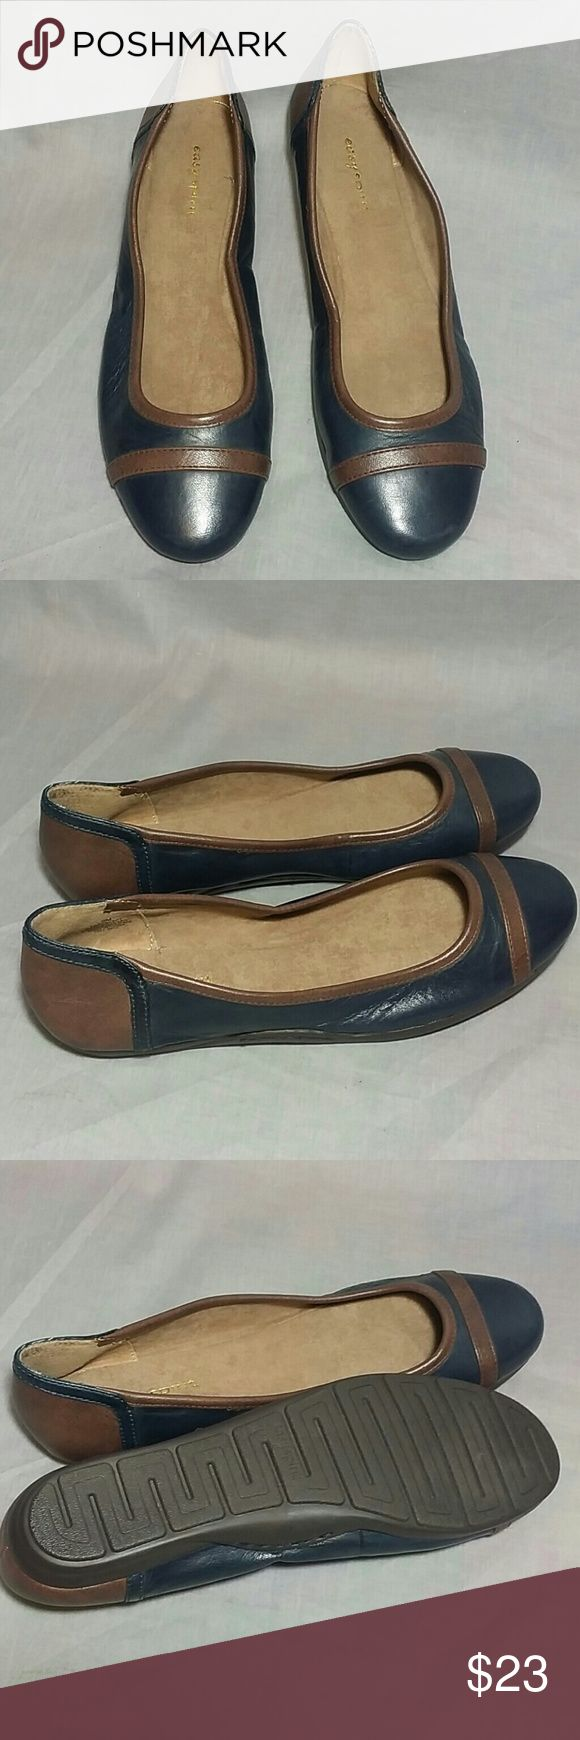 easy spirit Ballet Flat Shoes Slip-on 9 M Leather Item is in a good condition NO PETS AND SMOKE FREE HOME. Easy Spirit Shoes Flats & Loafers